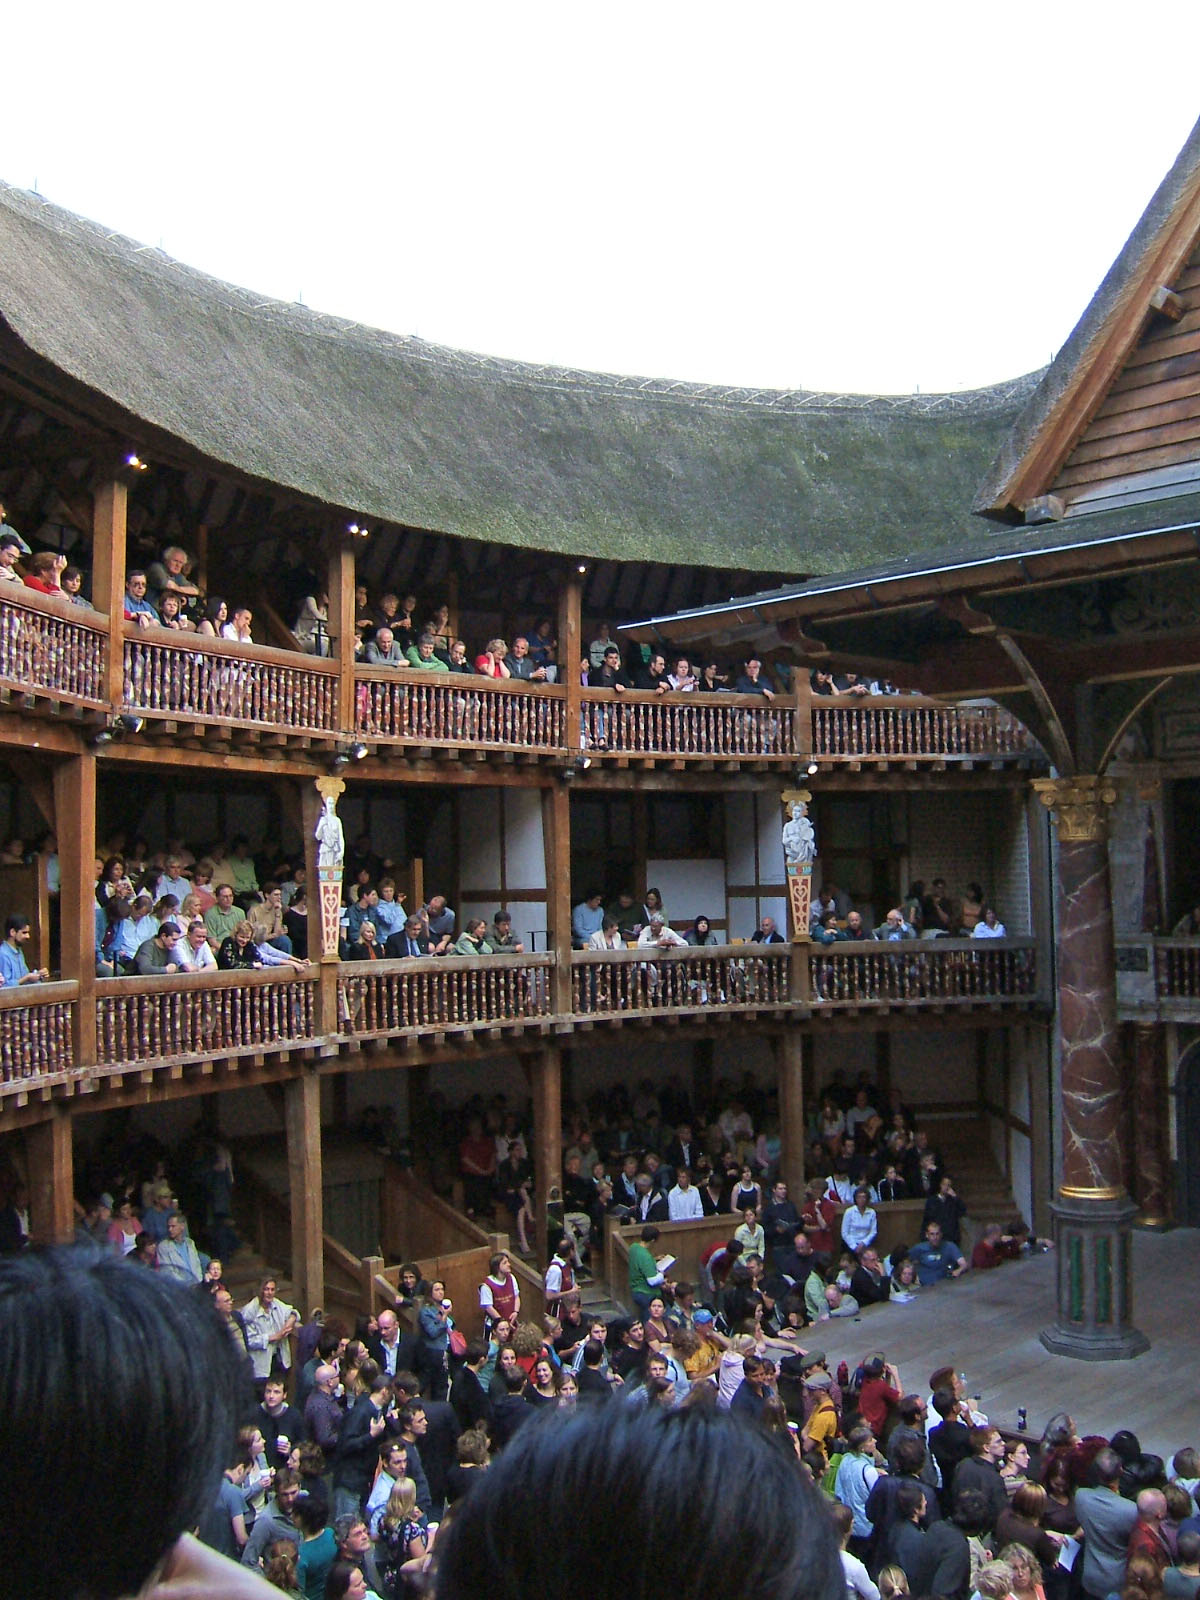 a description of the globe theatre as a london theatre This is a informative tour of the globe theatre, queen elizabeth's favorite theater to visit and the venue of many of shakepeare's most famous plays shakespeares globe theatre this tour involves a powerpoint presentation and a 5 minute virtual tour of the globe itself.